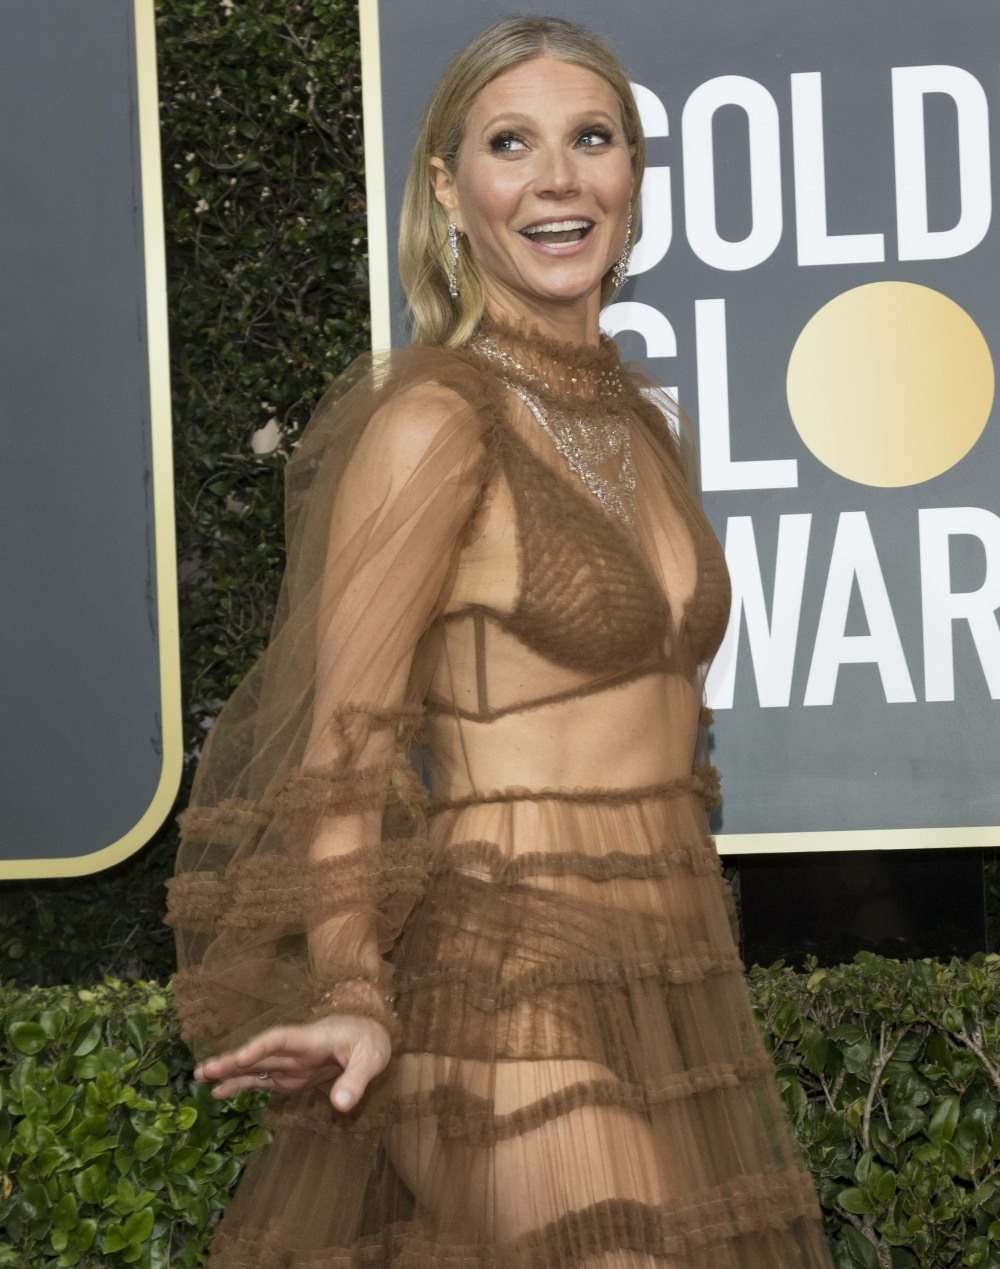 Gwyneth Paltrow attends the 77th Annual Golden Globe Awards, Golden Globes, at Hotel Beverly Hilton in Beverly Hills, Los Angeles, USA, on 05 January 2020.   usage worldwide